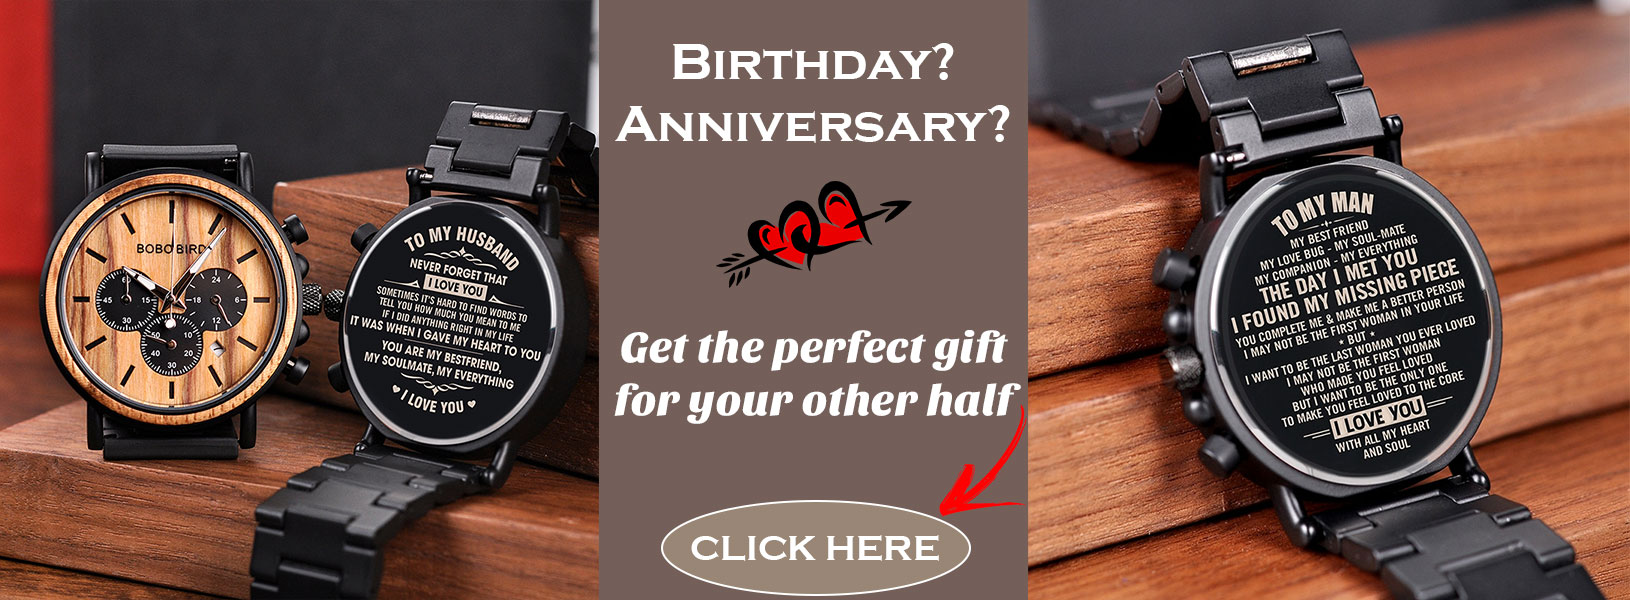 birthday anniversary gift bobo bird wooden watch uk